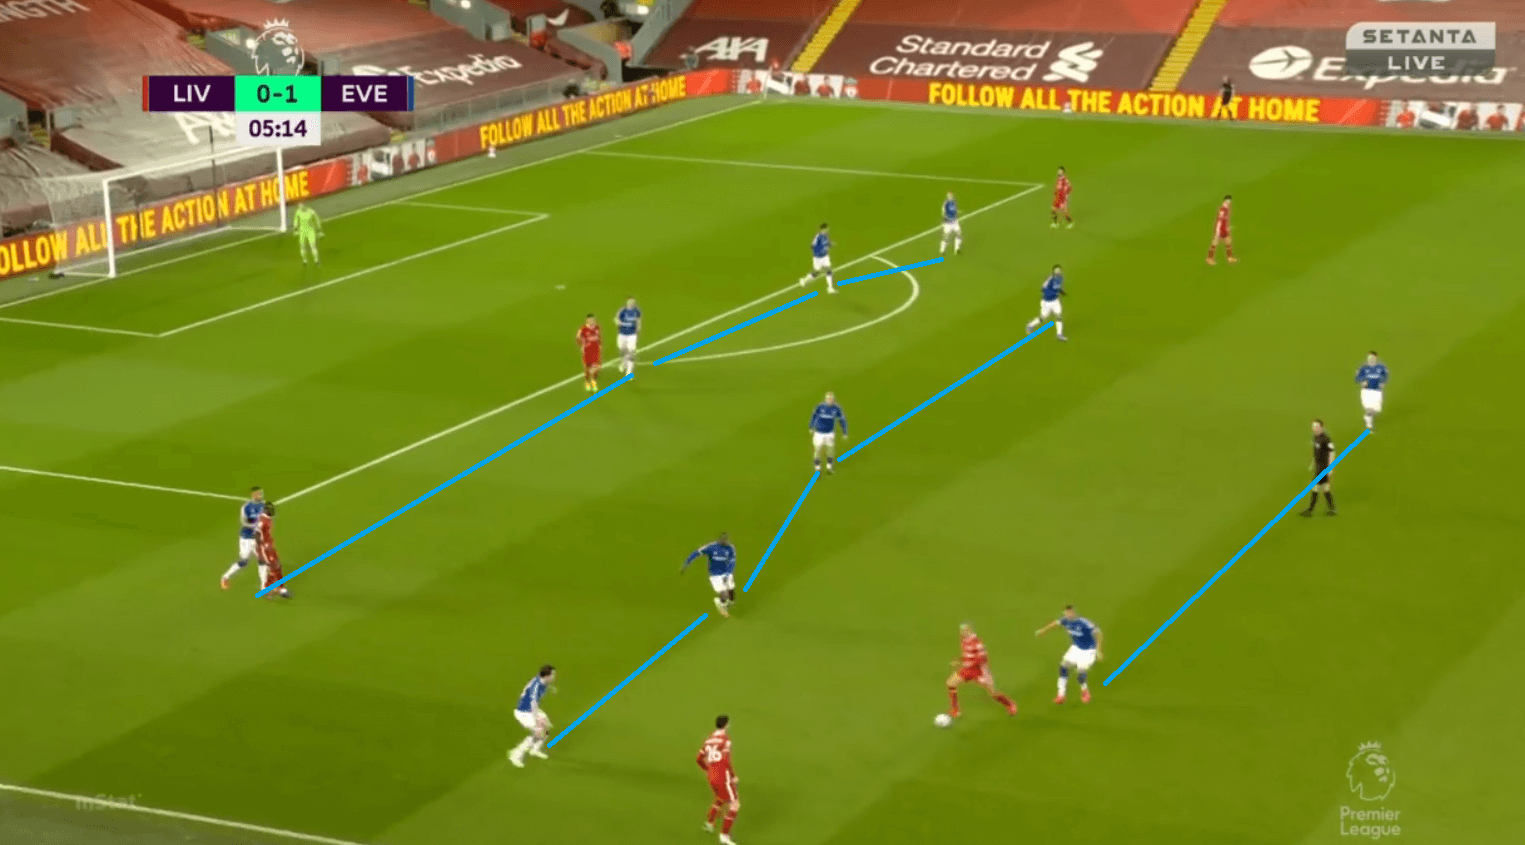 Everton Evolution: Analysis of Ancelotti's ever-changing shape in victory over Liverpool tactical analysis tactics